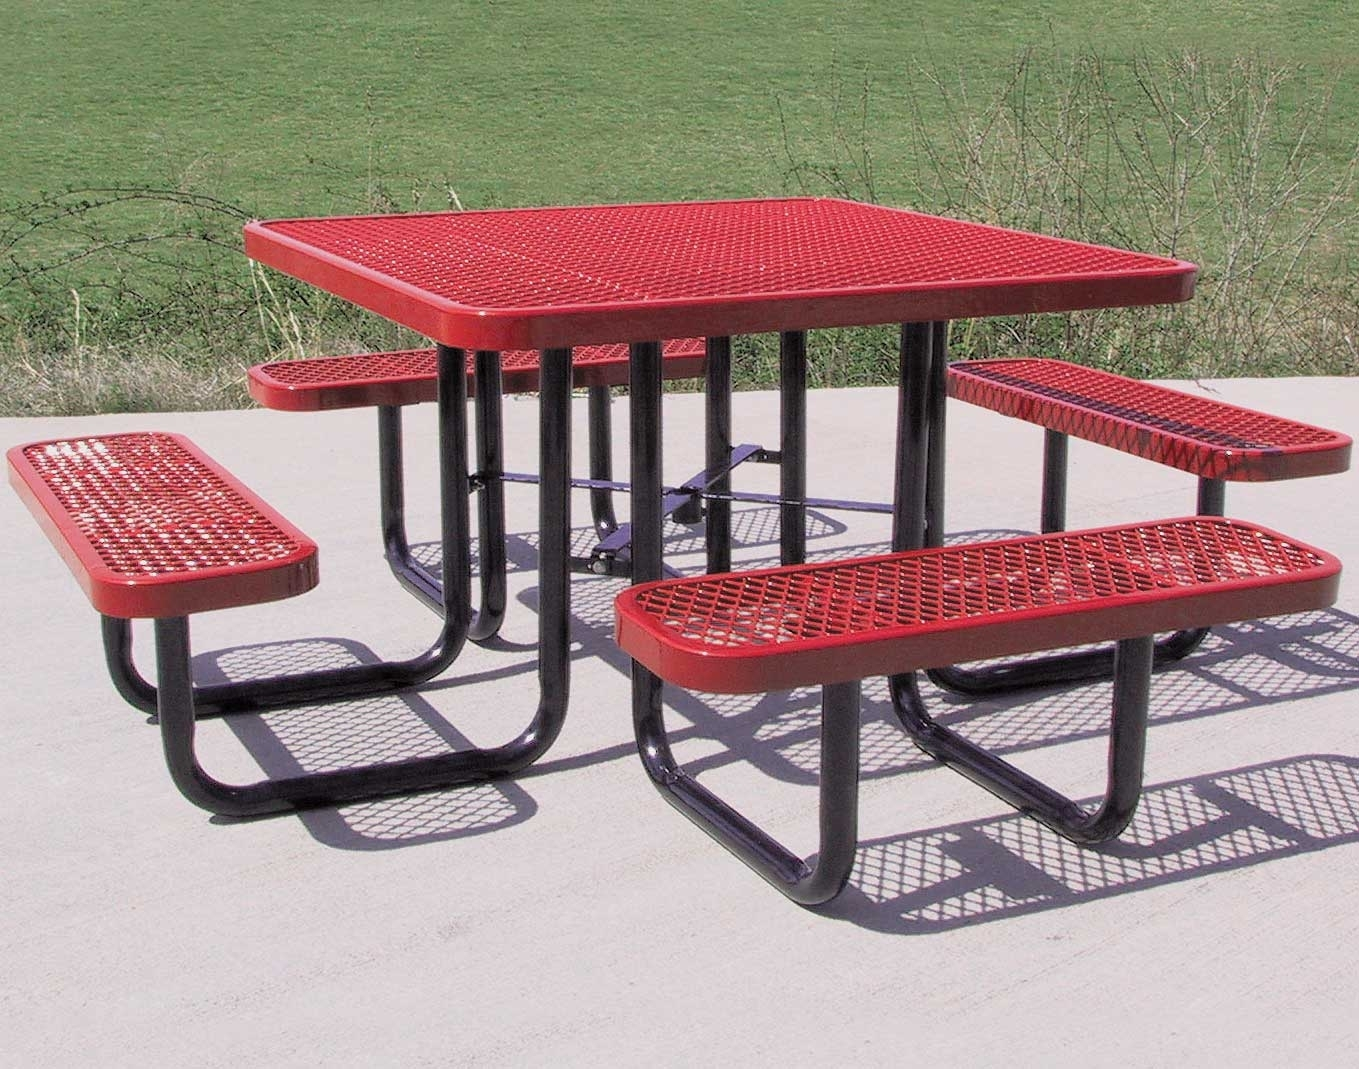 Image of: 46 Square Expanded Metal Picnic Table Intended For Expanded Metal Outdoor Furniture Ideas